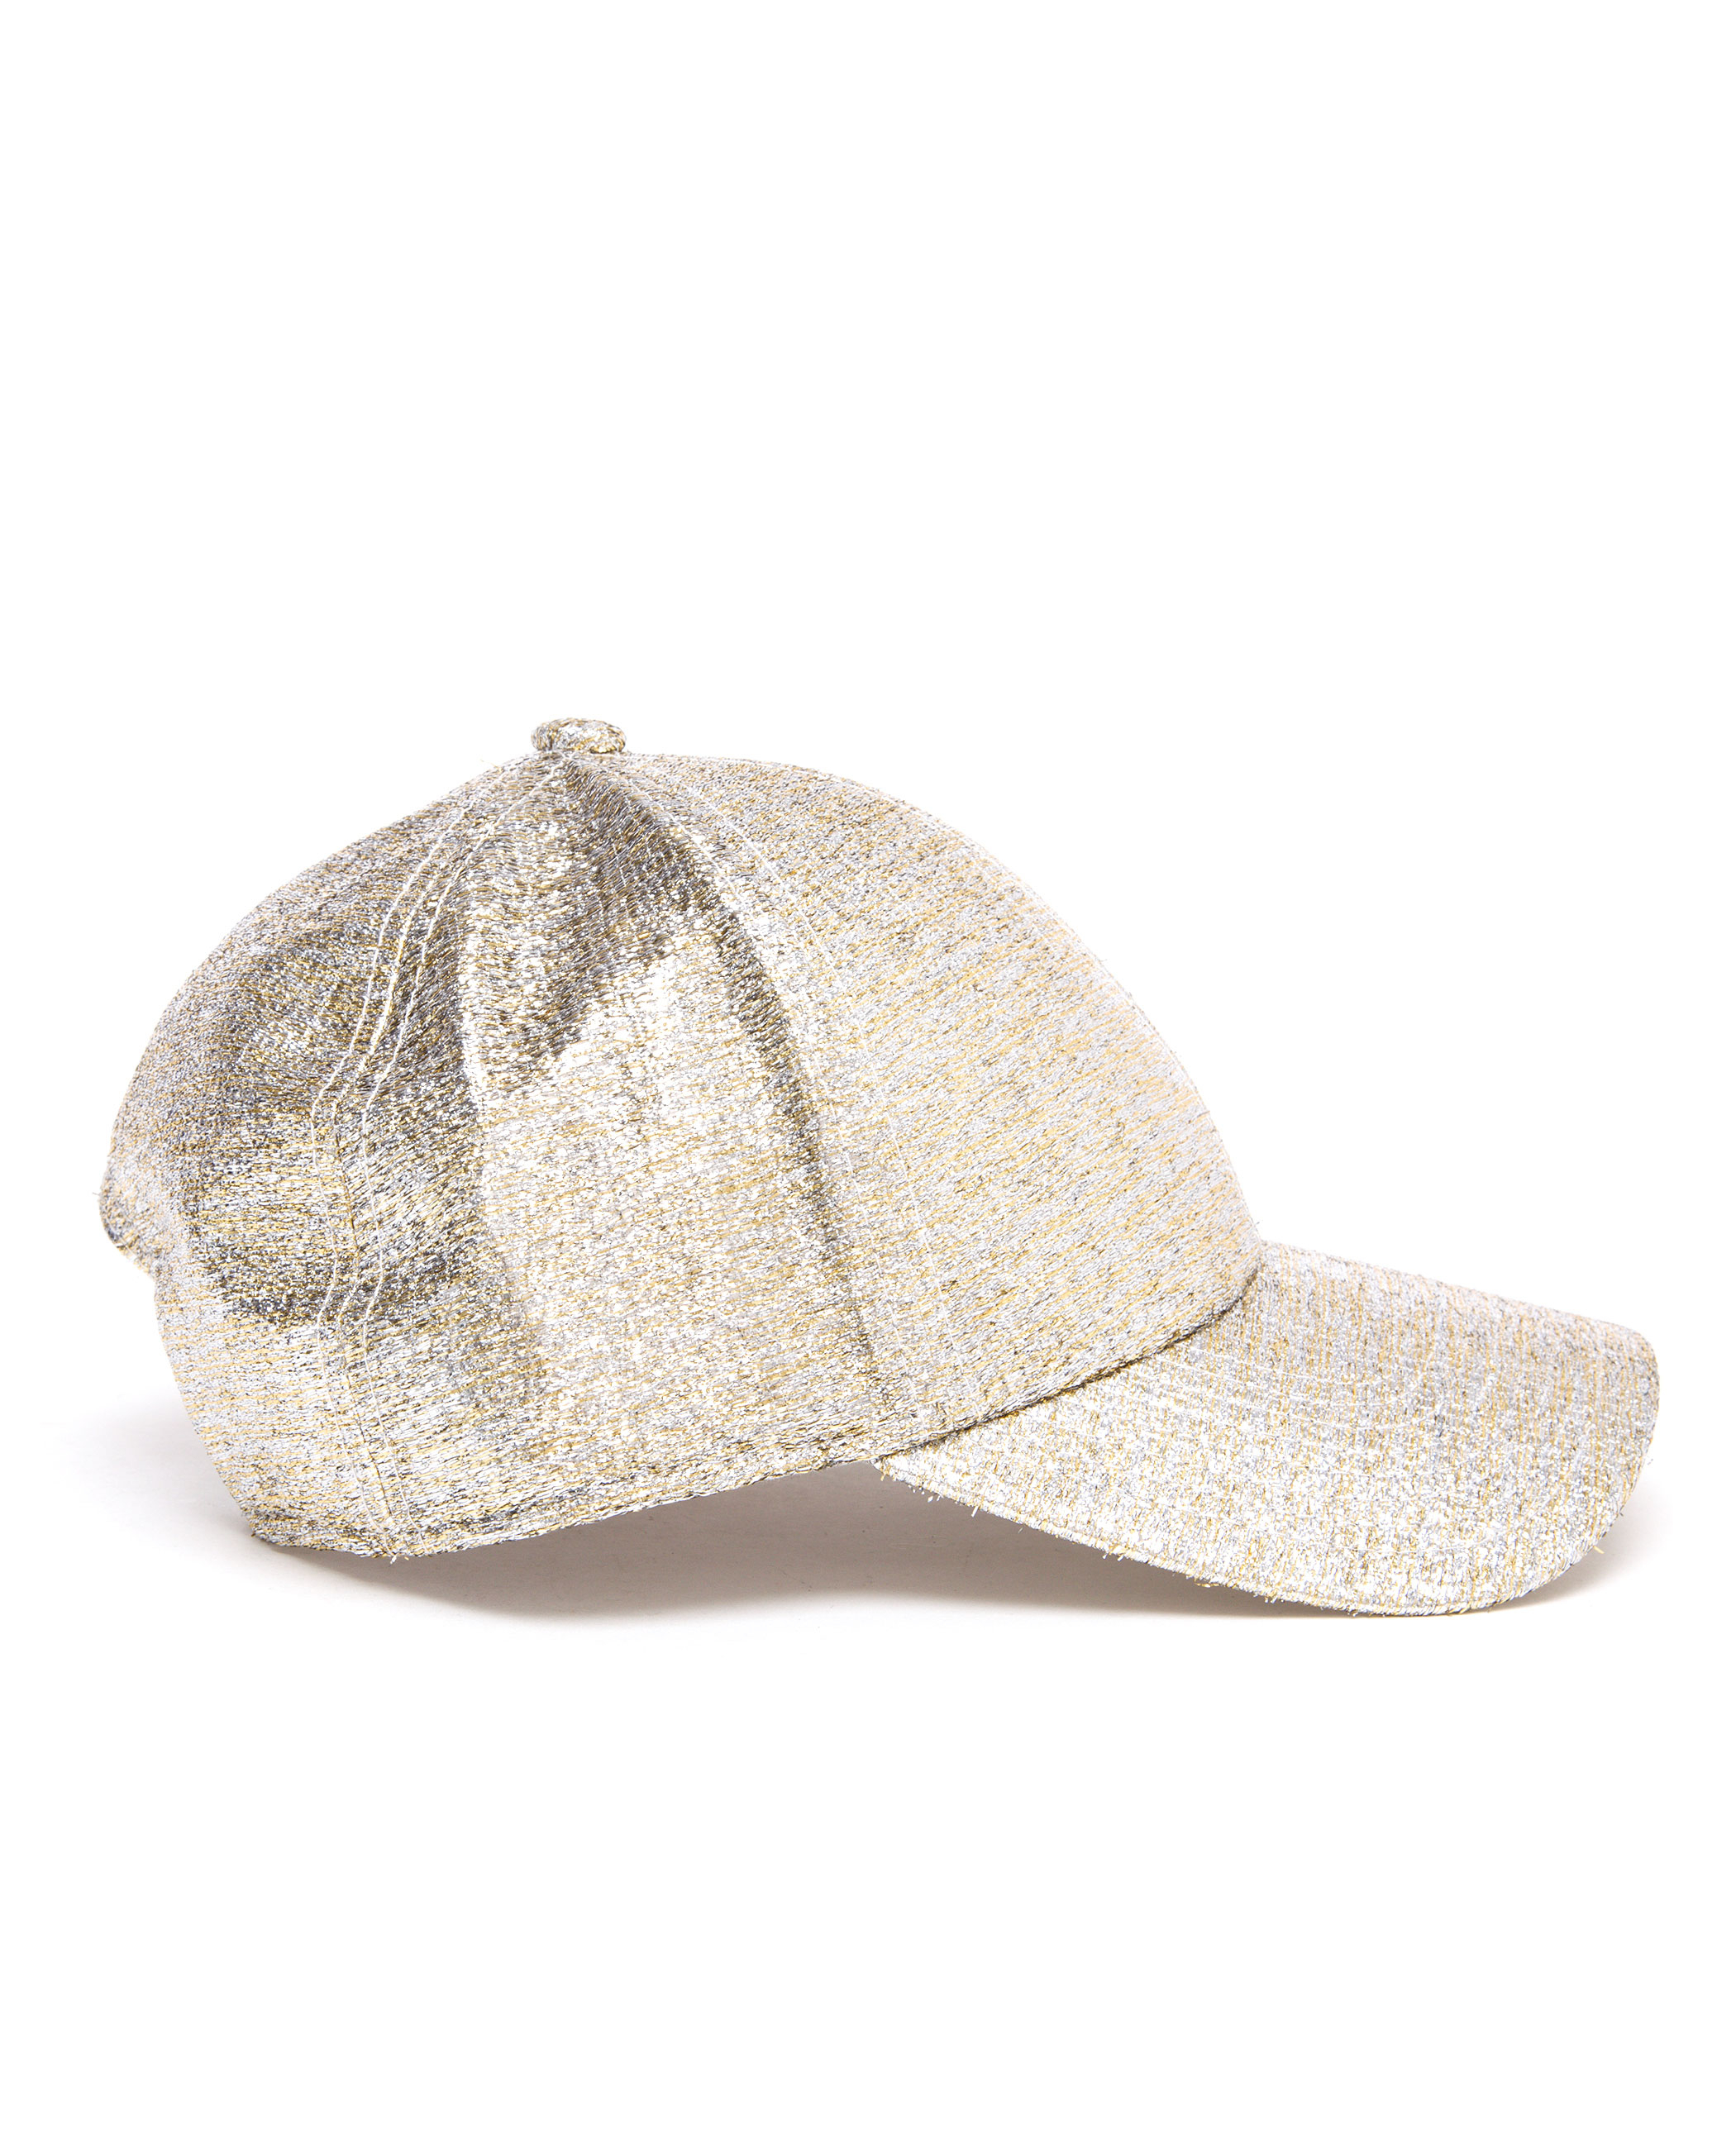 cc06d9640aa Acne Studios Camp Glitter Baseball Cap in Metallic - Lyst